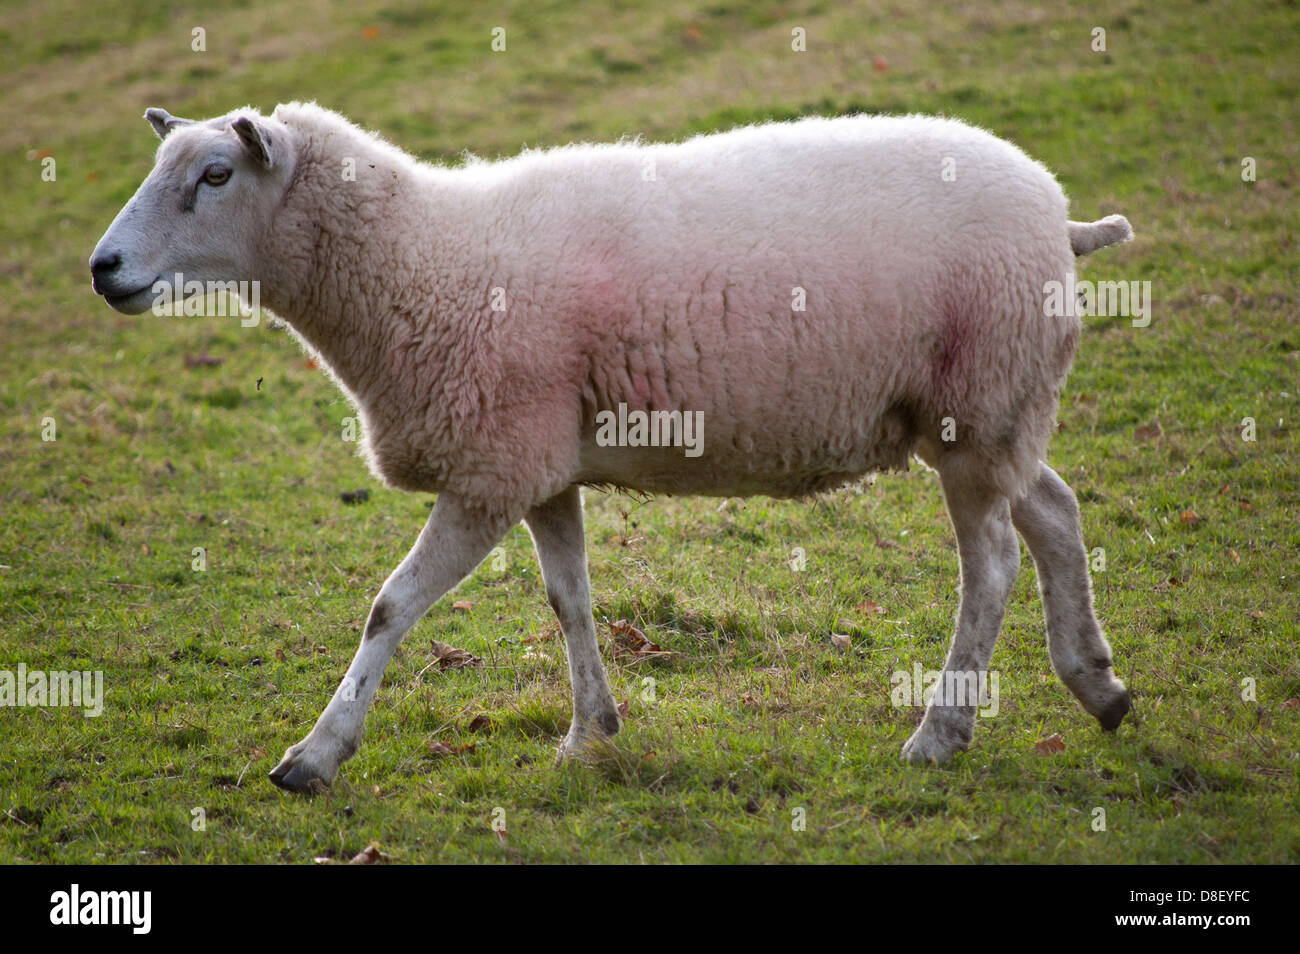 Close-up of sheep in field Stock Photo